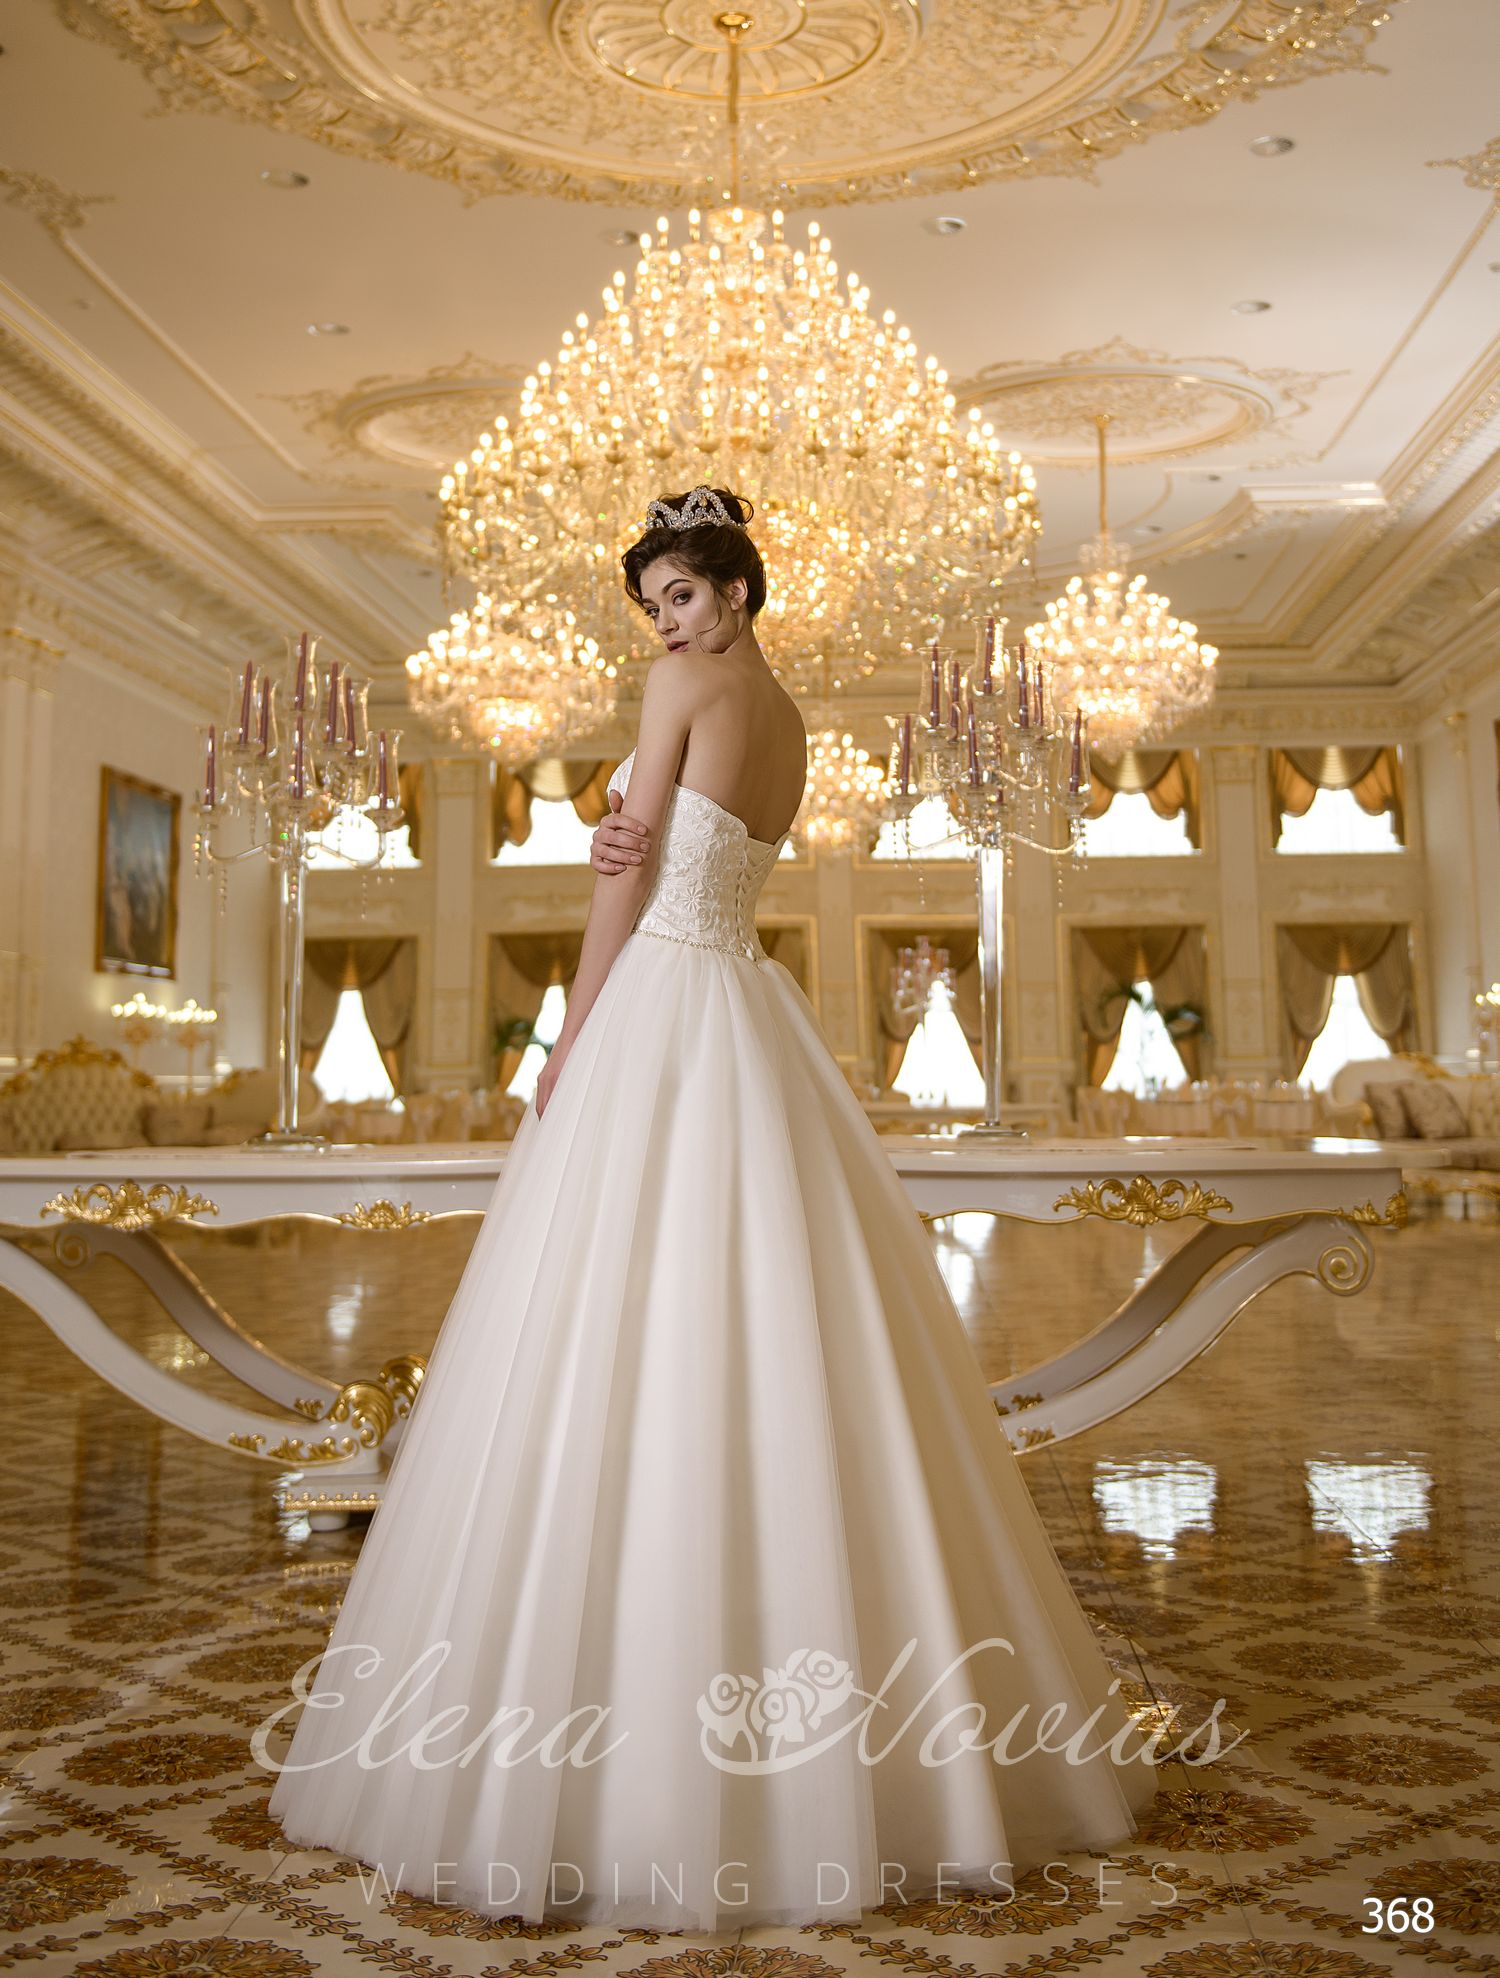 Wedding dress wholesale 368